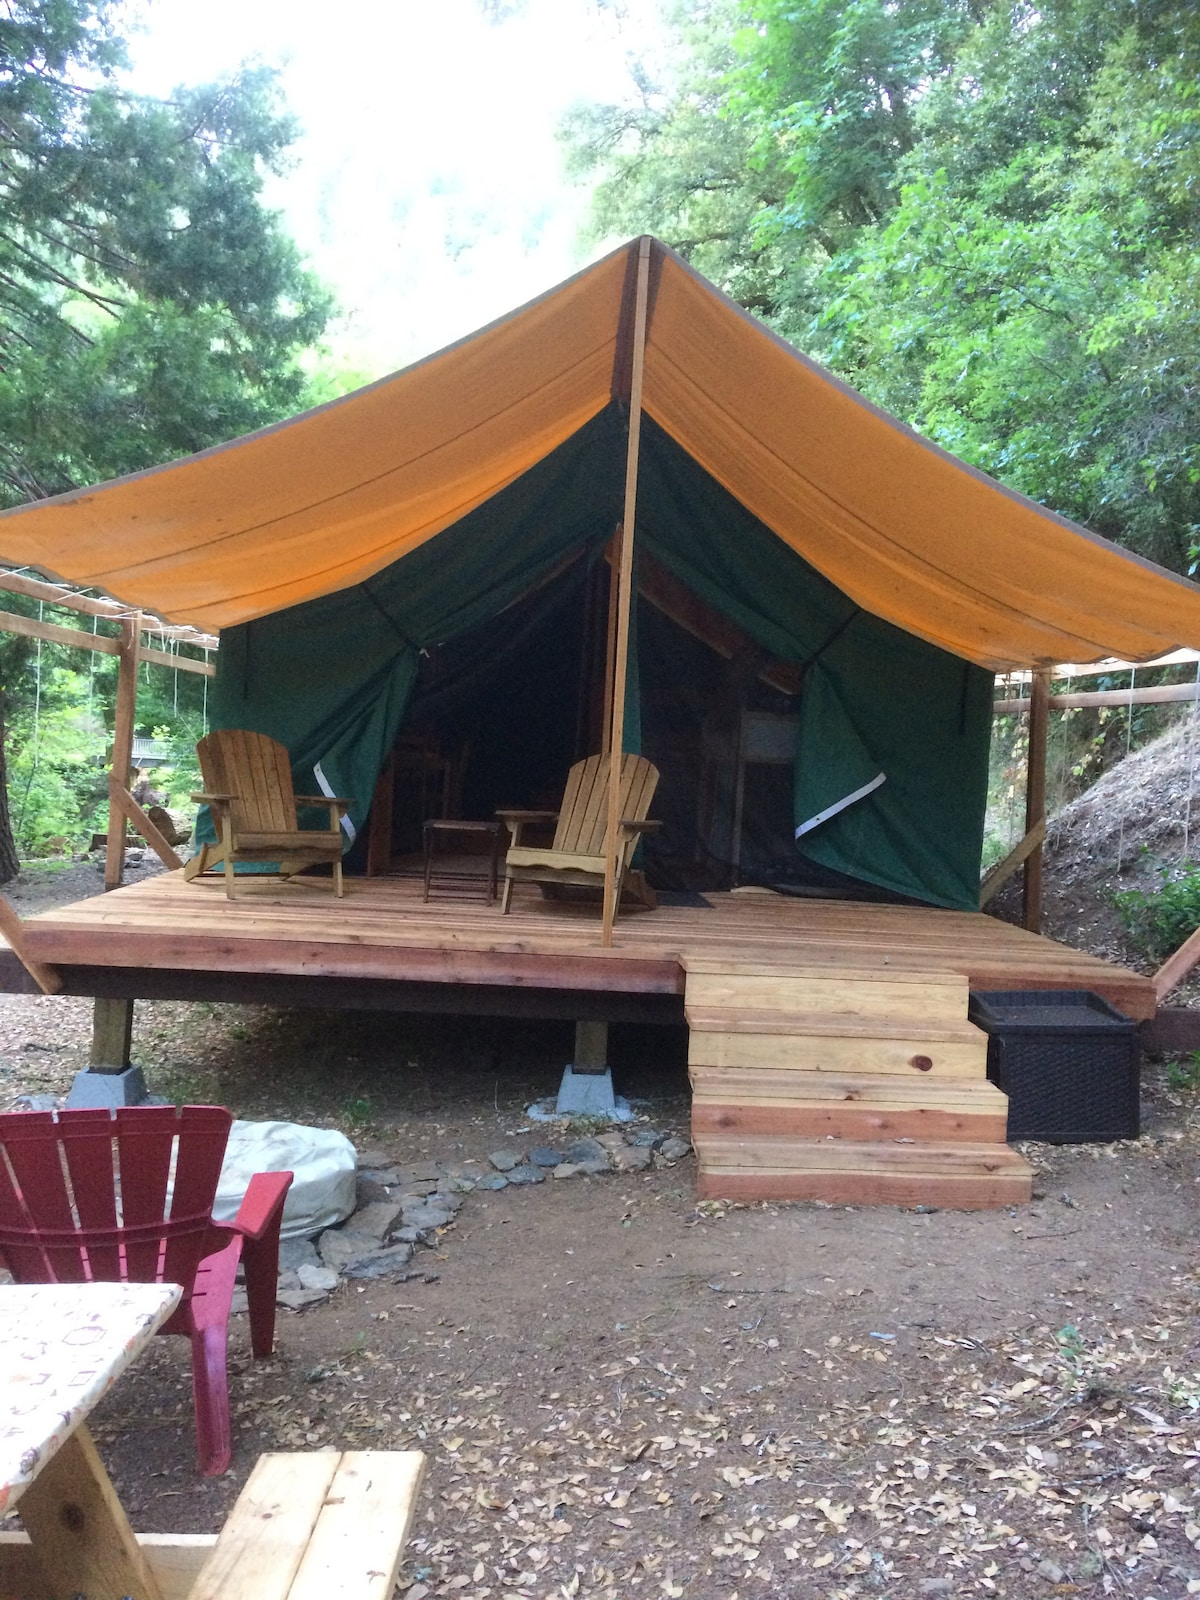 ... Deck of the gl&ing tent - propane fireplace outside & Safari Tent located on beautiful creek - Tents for Rent in ...